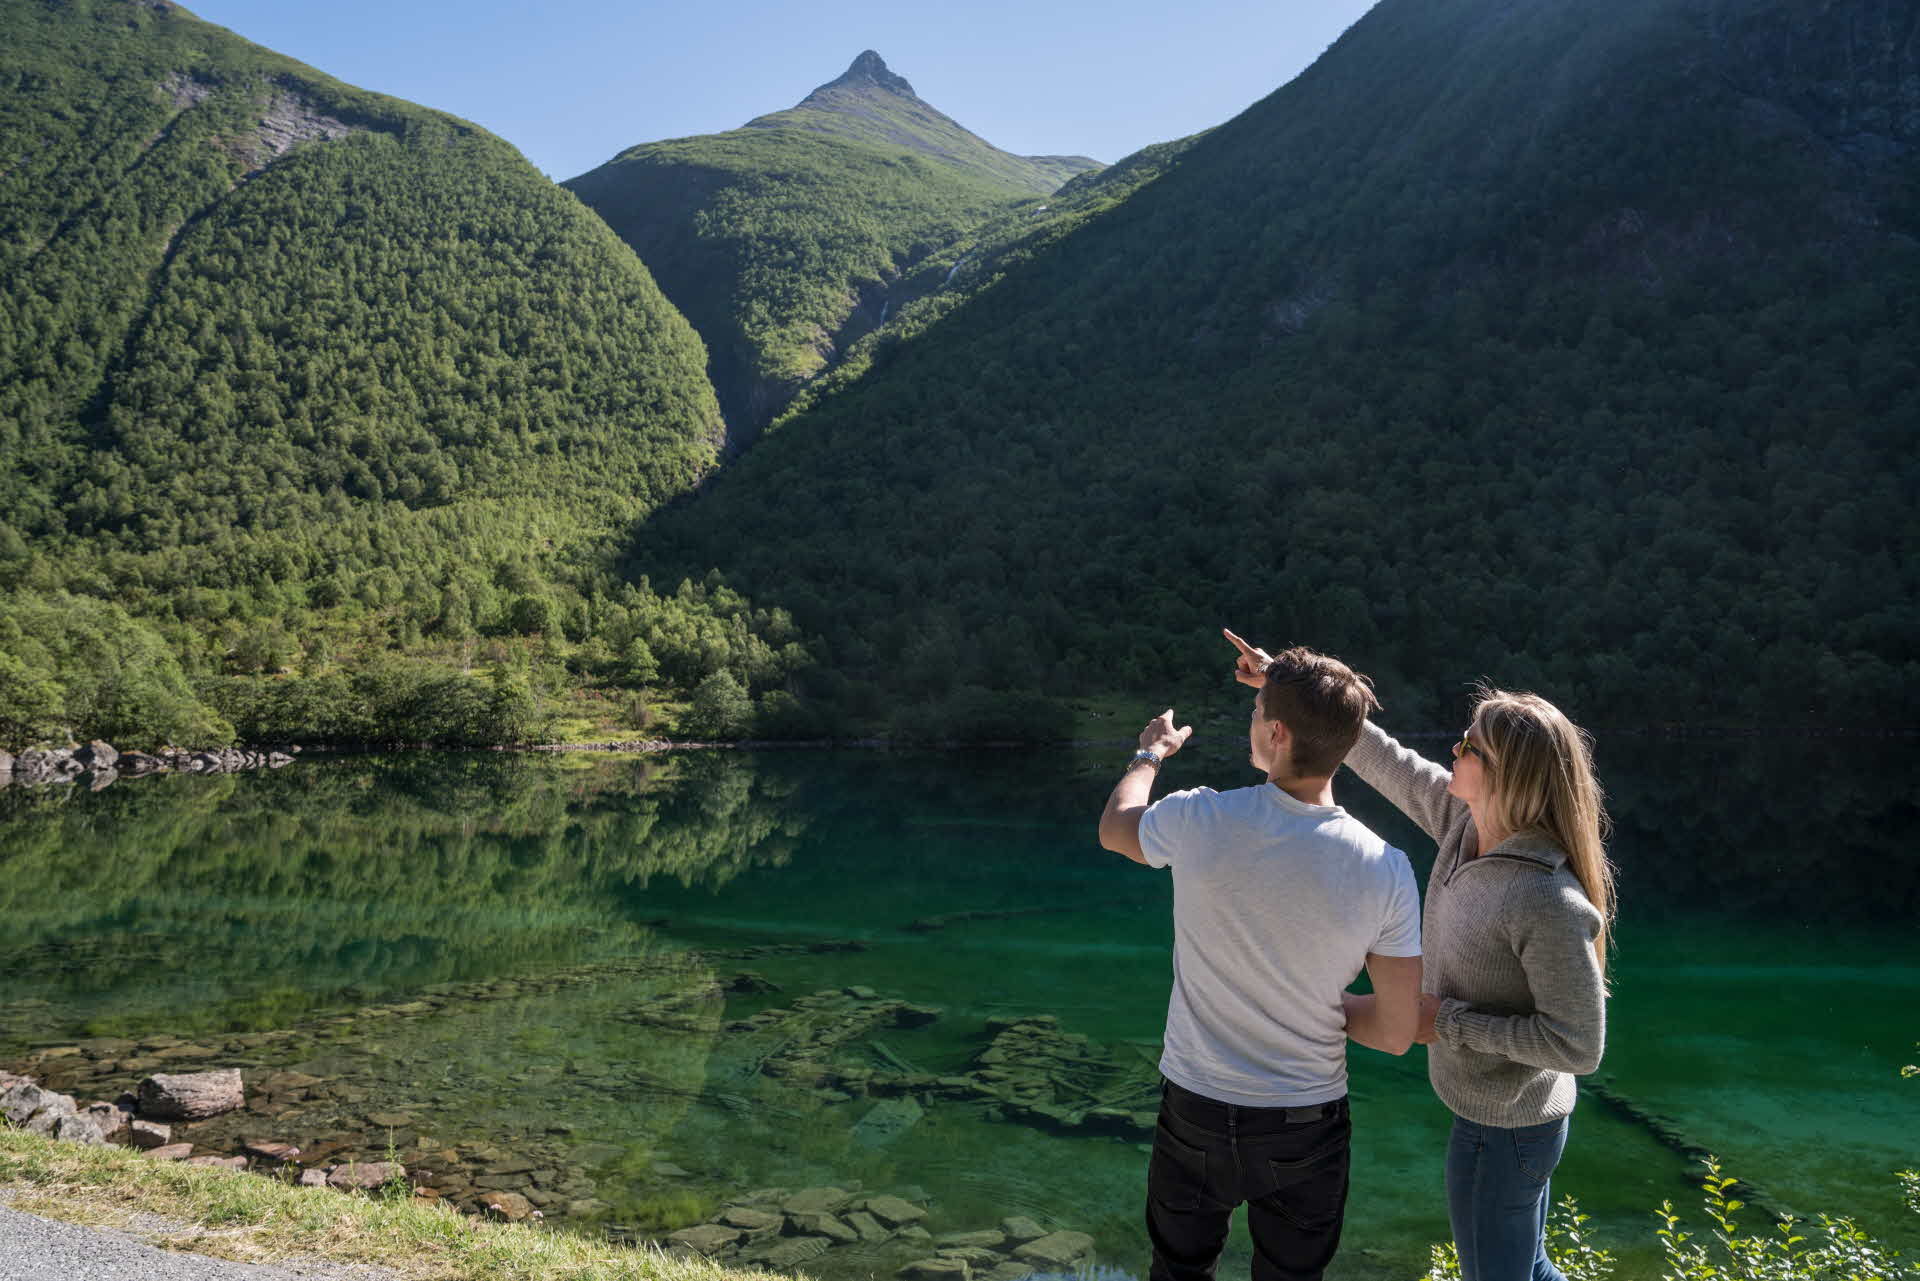 A woman and a man standing next to the ruins of the farm under the water in Norangdalen